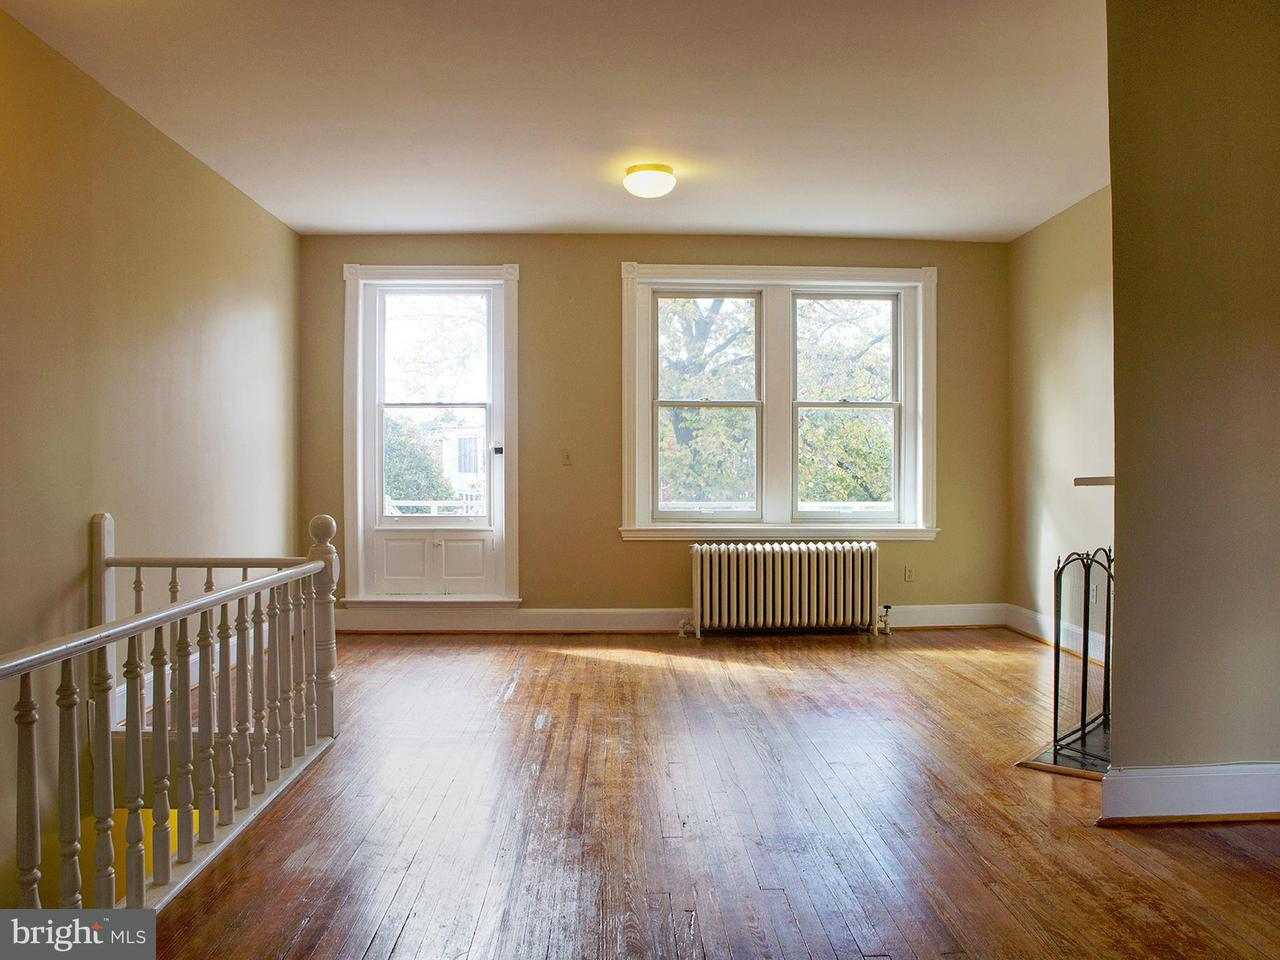 Additional photo for property listing at 1312 Massachusetts Ave Se 1312 Massachusetts Ave Se Washington, District Of Columbia 20003 Verenigde Staten